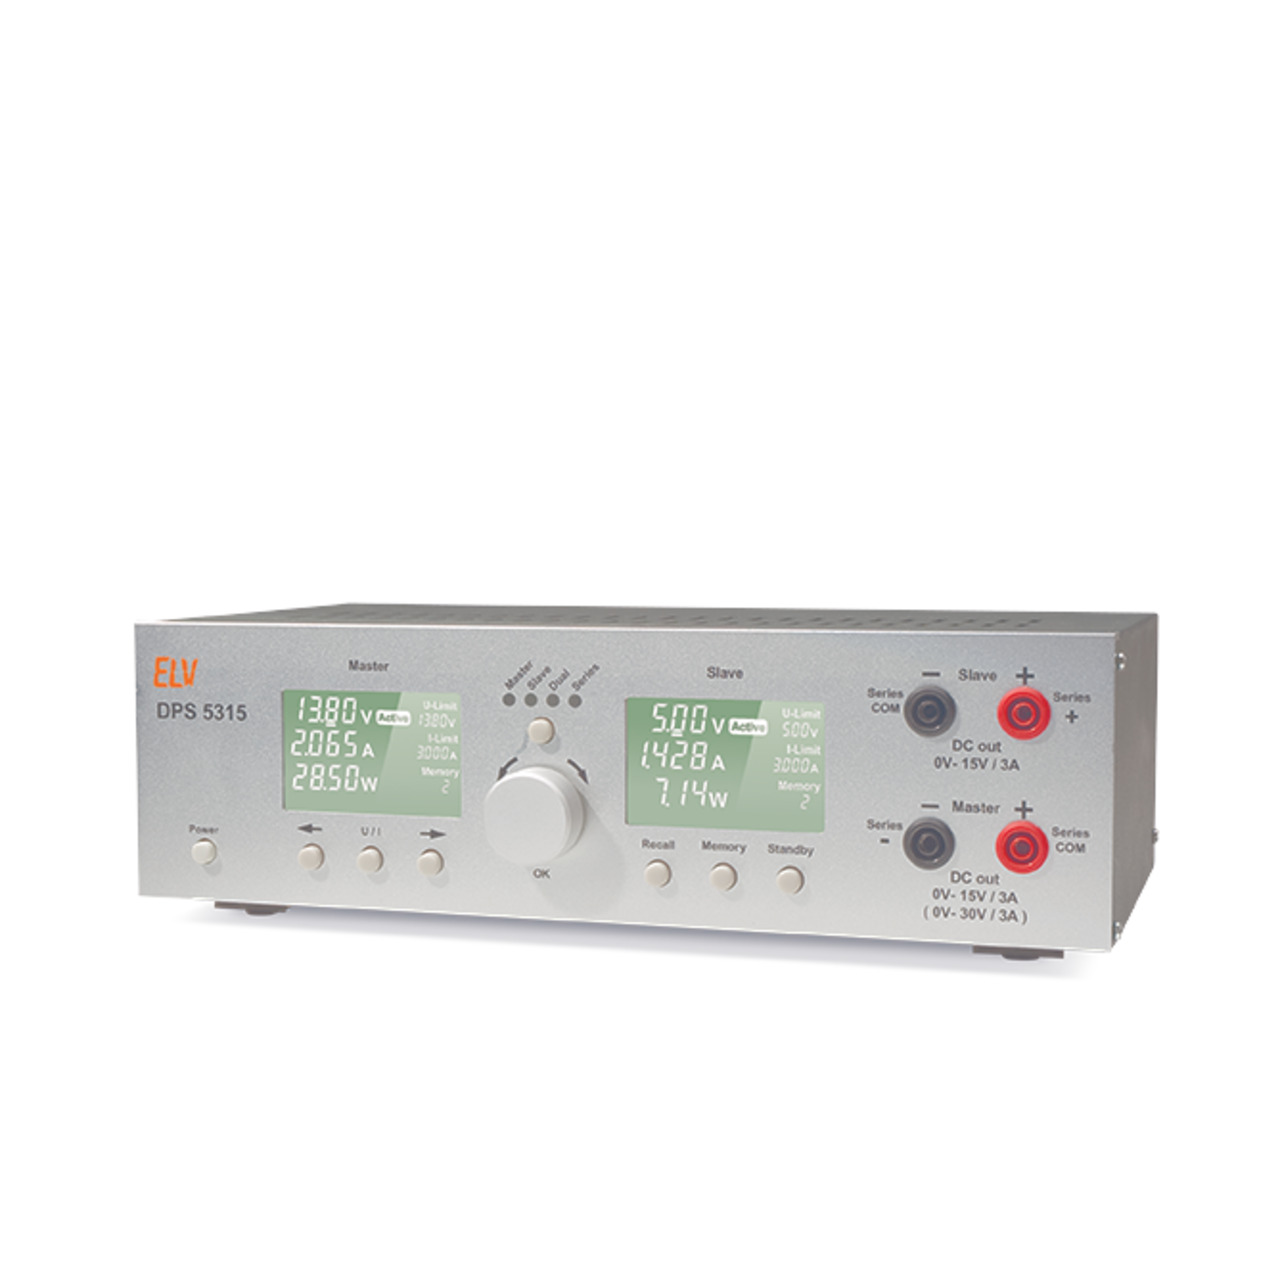 ELV Komplettbausatz Dual-Power-Supply DPS 5315